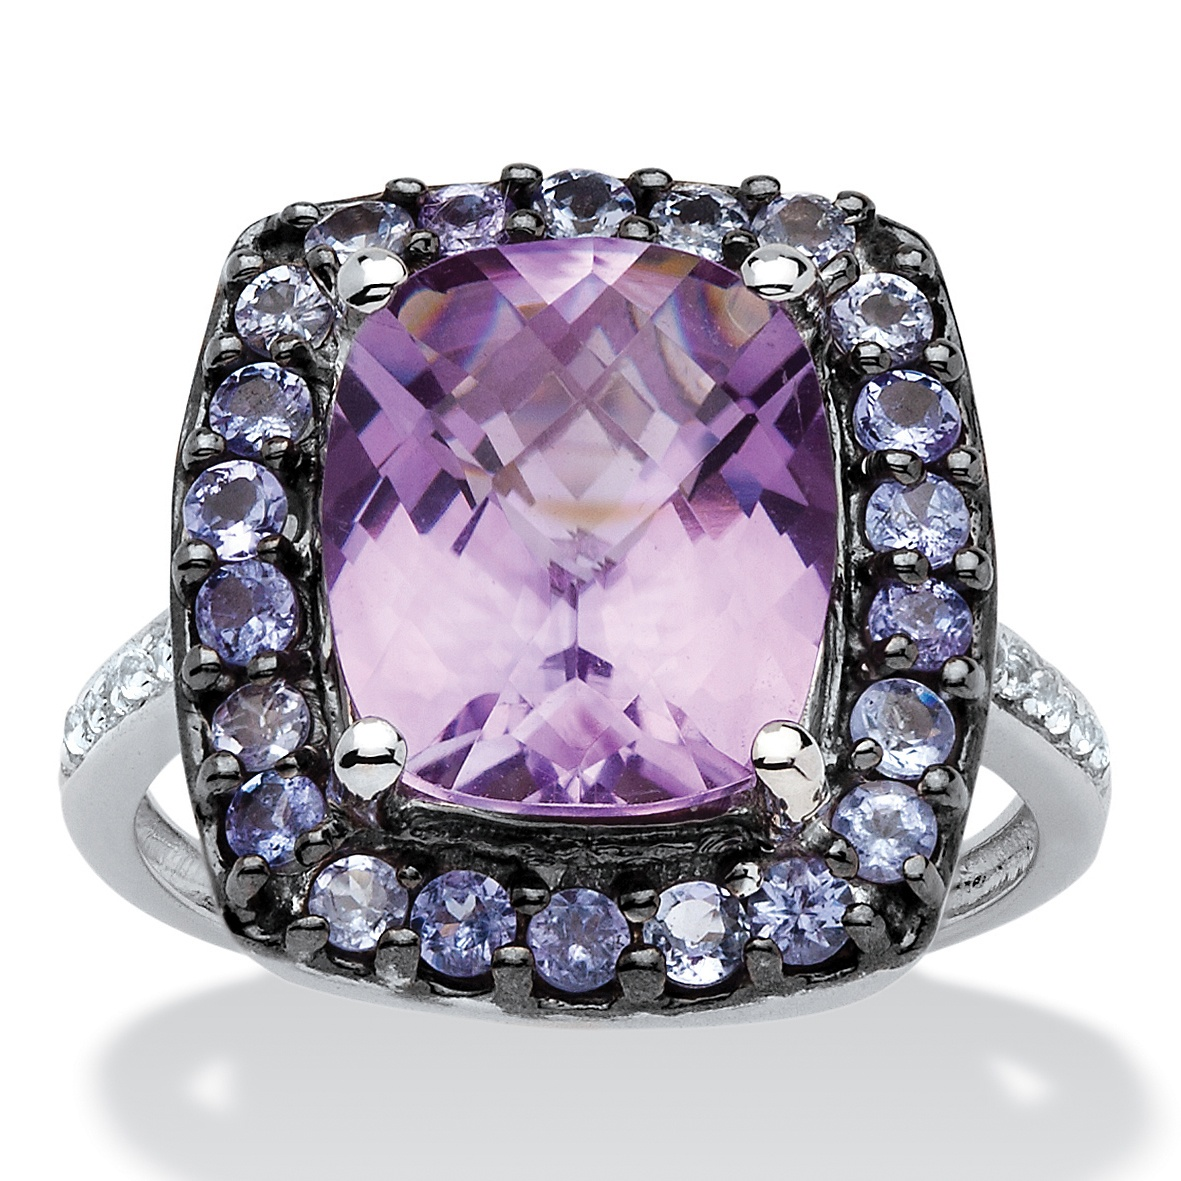 5.60 TCW Genuine Amethyst, Tanzanite and Topaz Halo Ring in Black Ruthenium over Sterling Silver